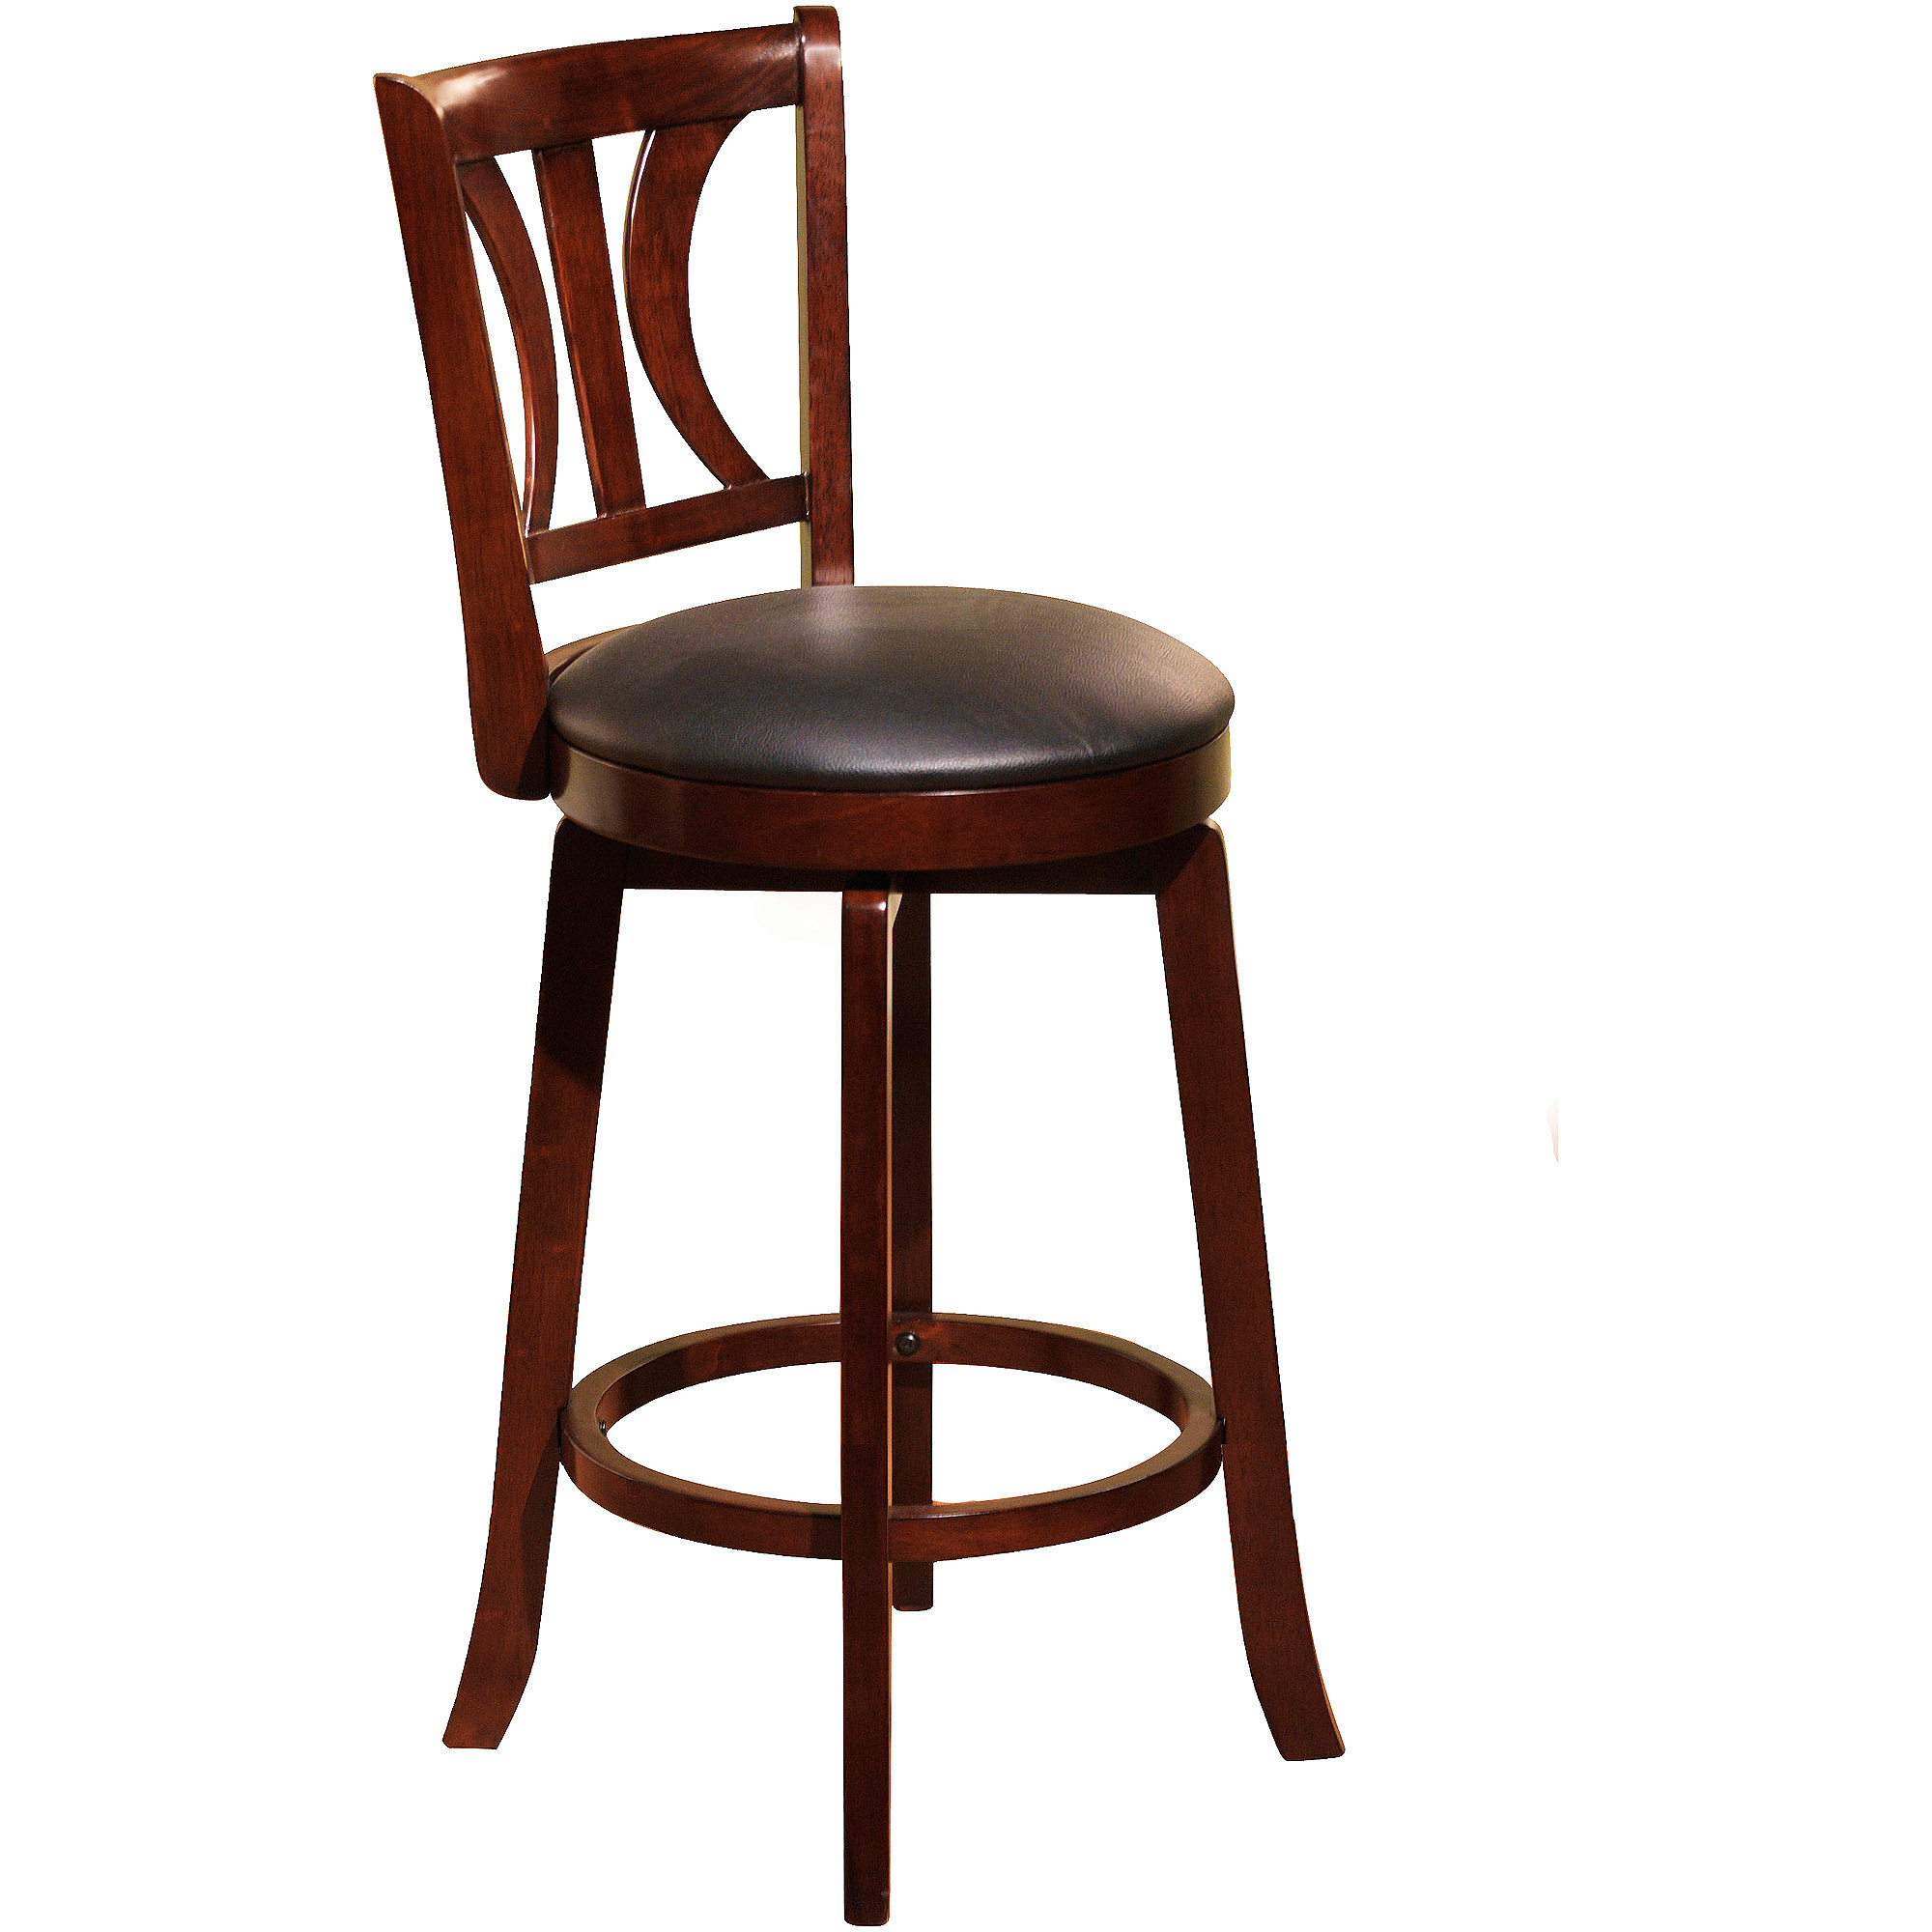 Houston 24u0027u0027 Swivel Counter Height Stool Multiple Colors  sc 1 st  Walmart & Houston 24u0027u0027 Swivel Counter Height Stool Multiple Colors ... islam-shia.org